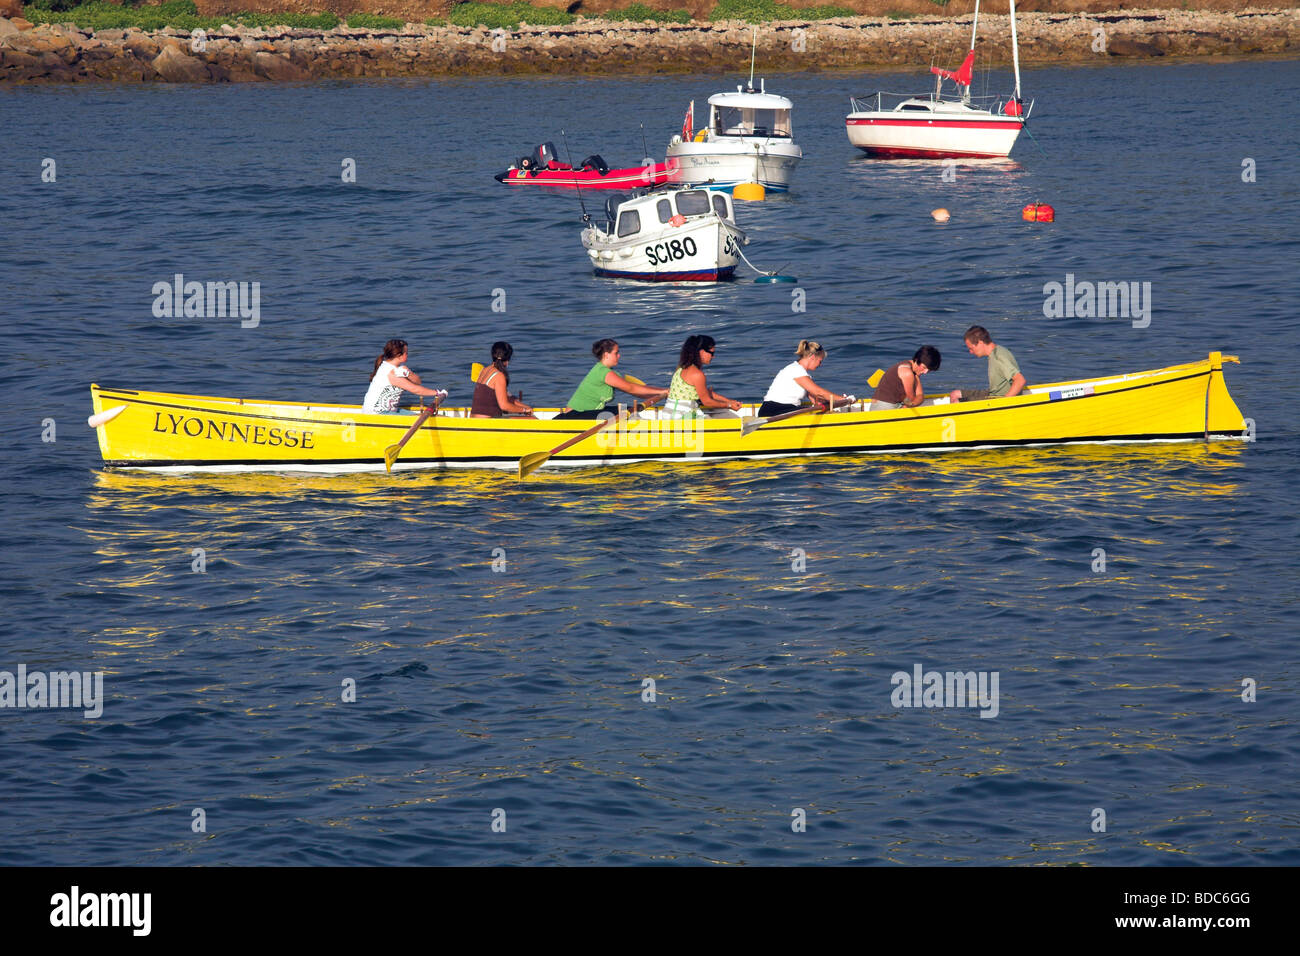 Pilot gig racing is the main sport on the Isles of Scilly. - Stock Image